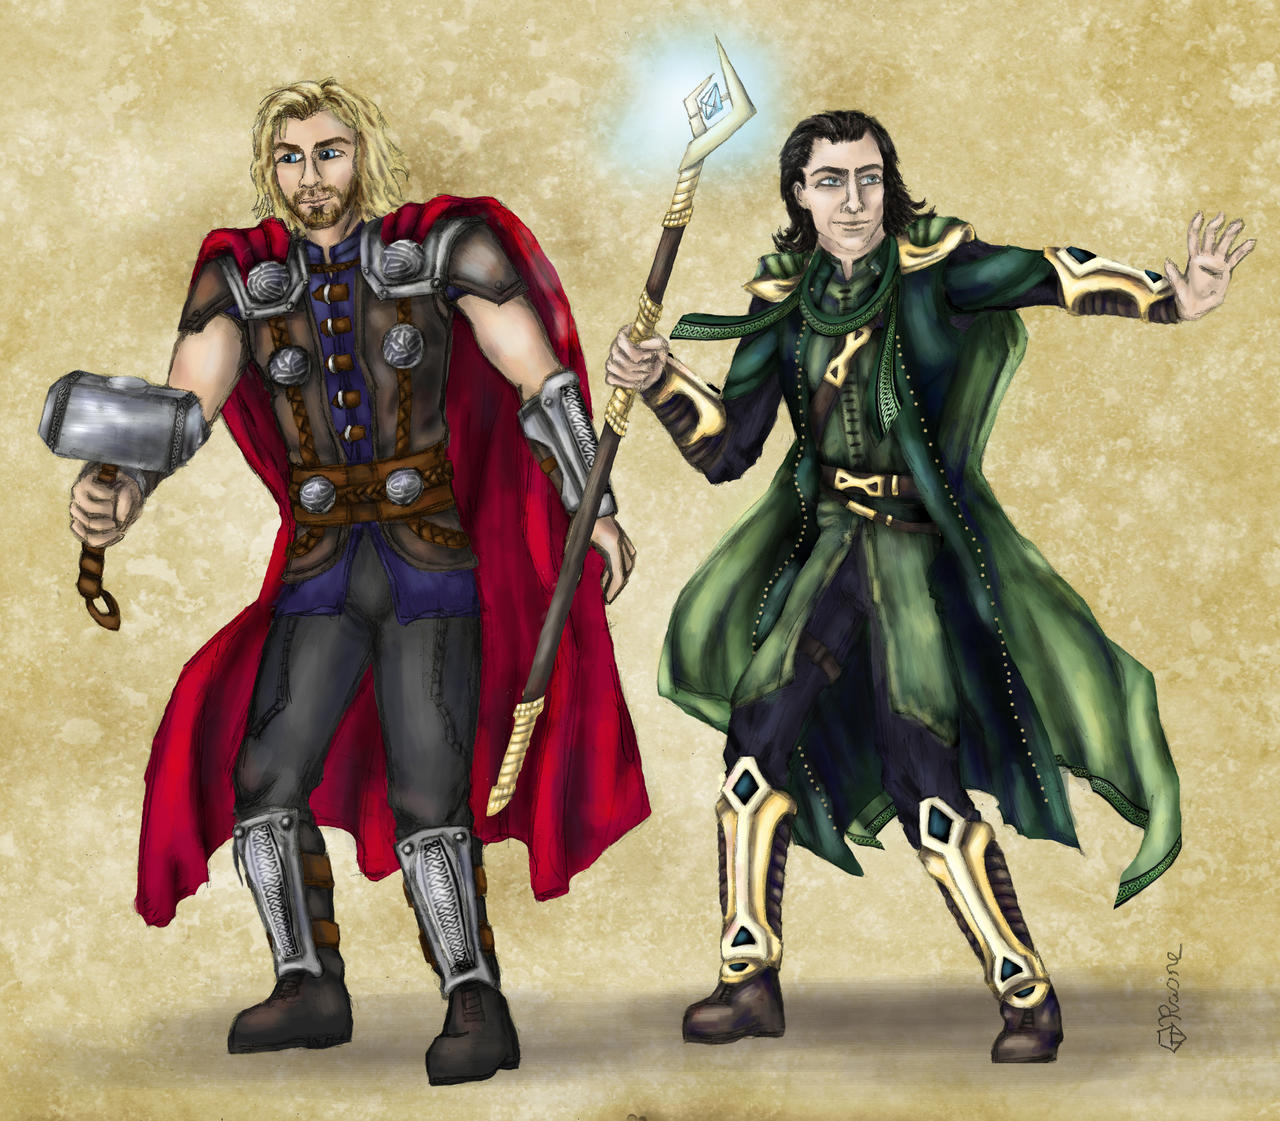 Képek - Page 6 Dnd_avengers___thor_and_loki_by_mcat711-d626p96